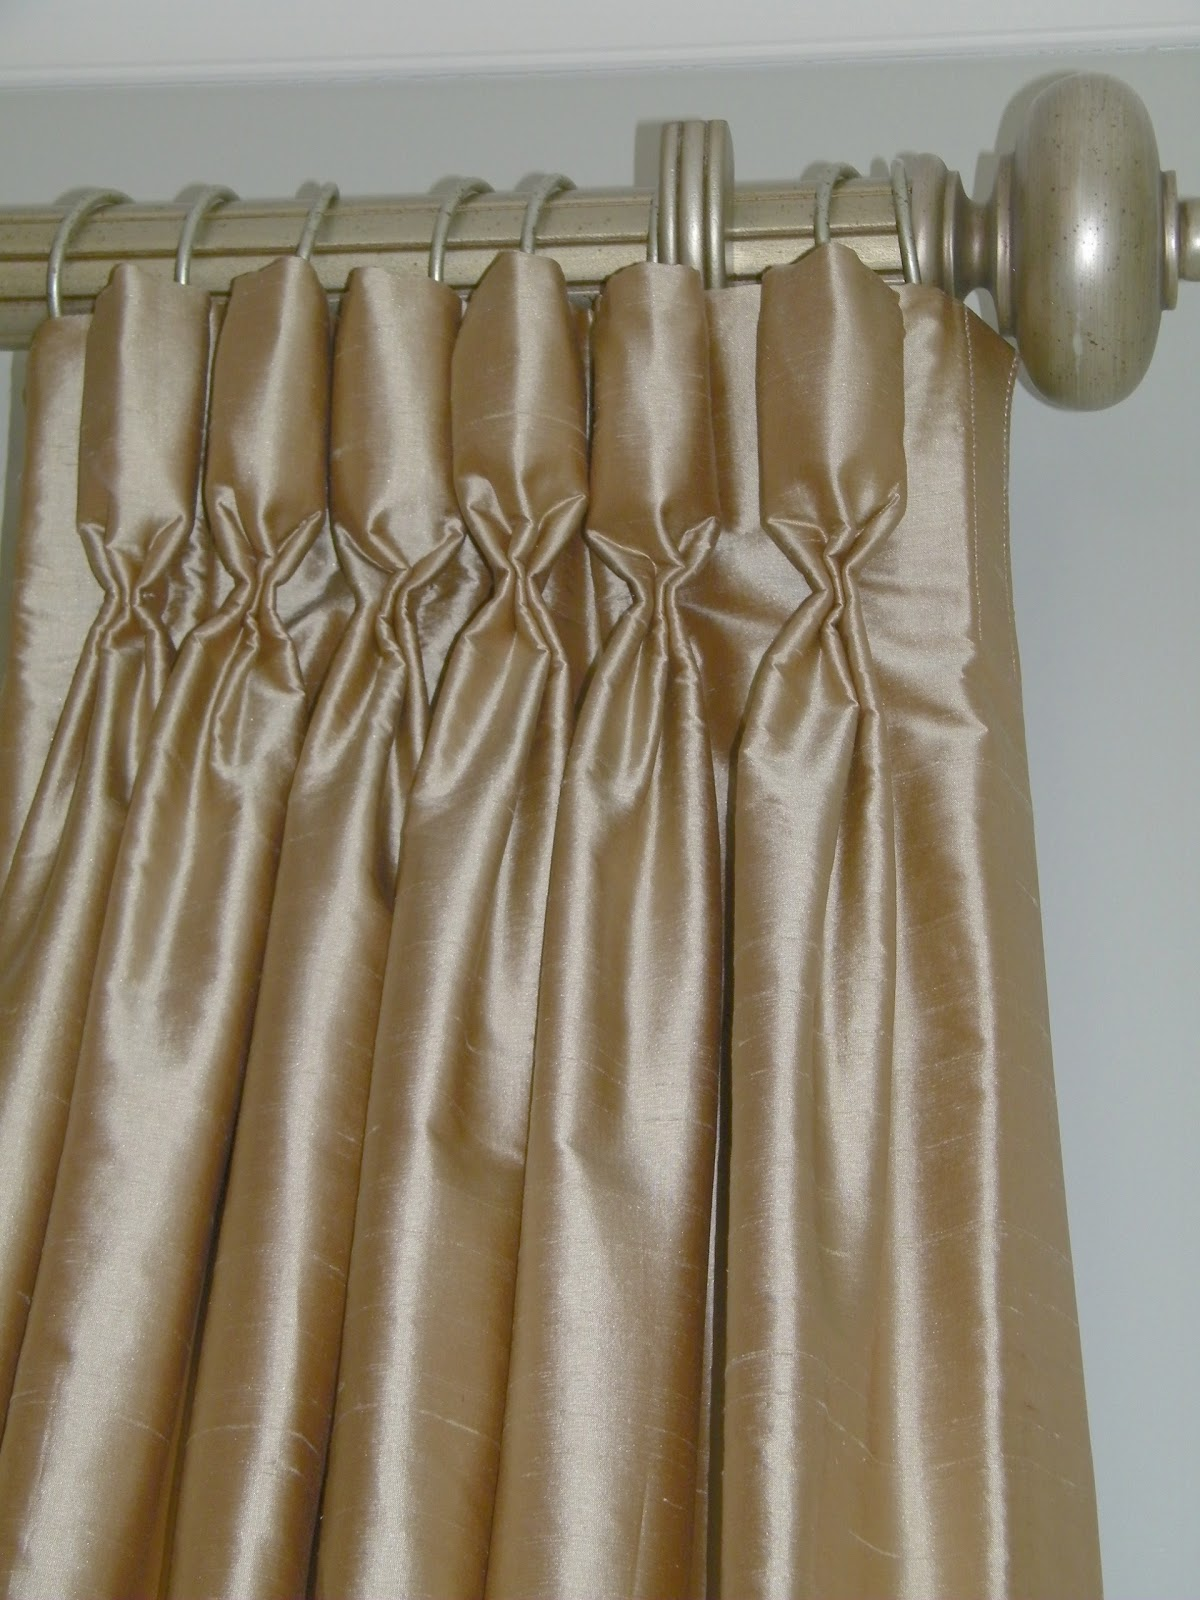 Goblet Pleated Draperies Are A Modern Version Of An Old Clic The Pinch Pleat